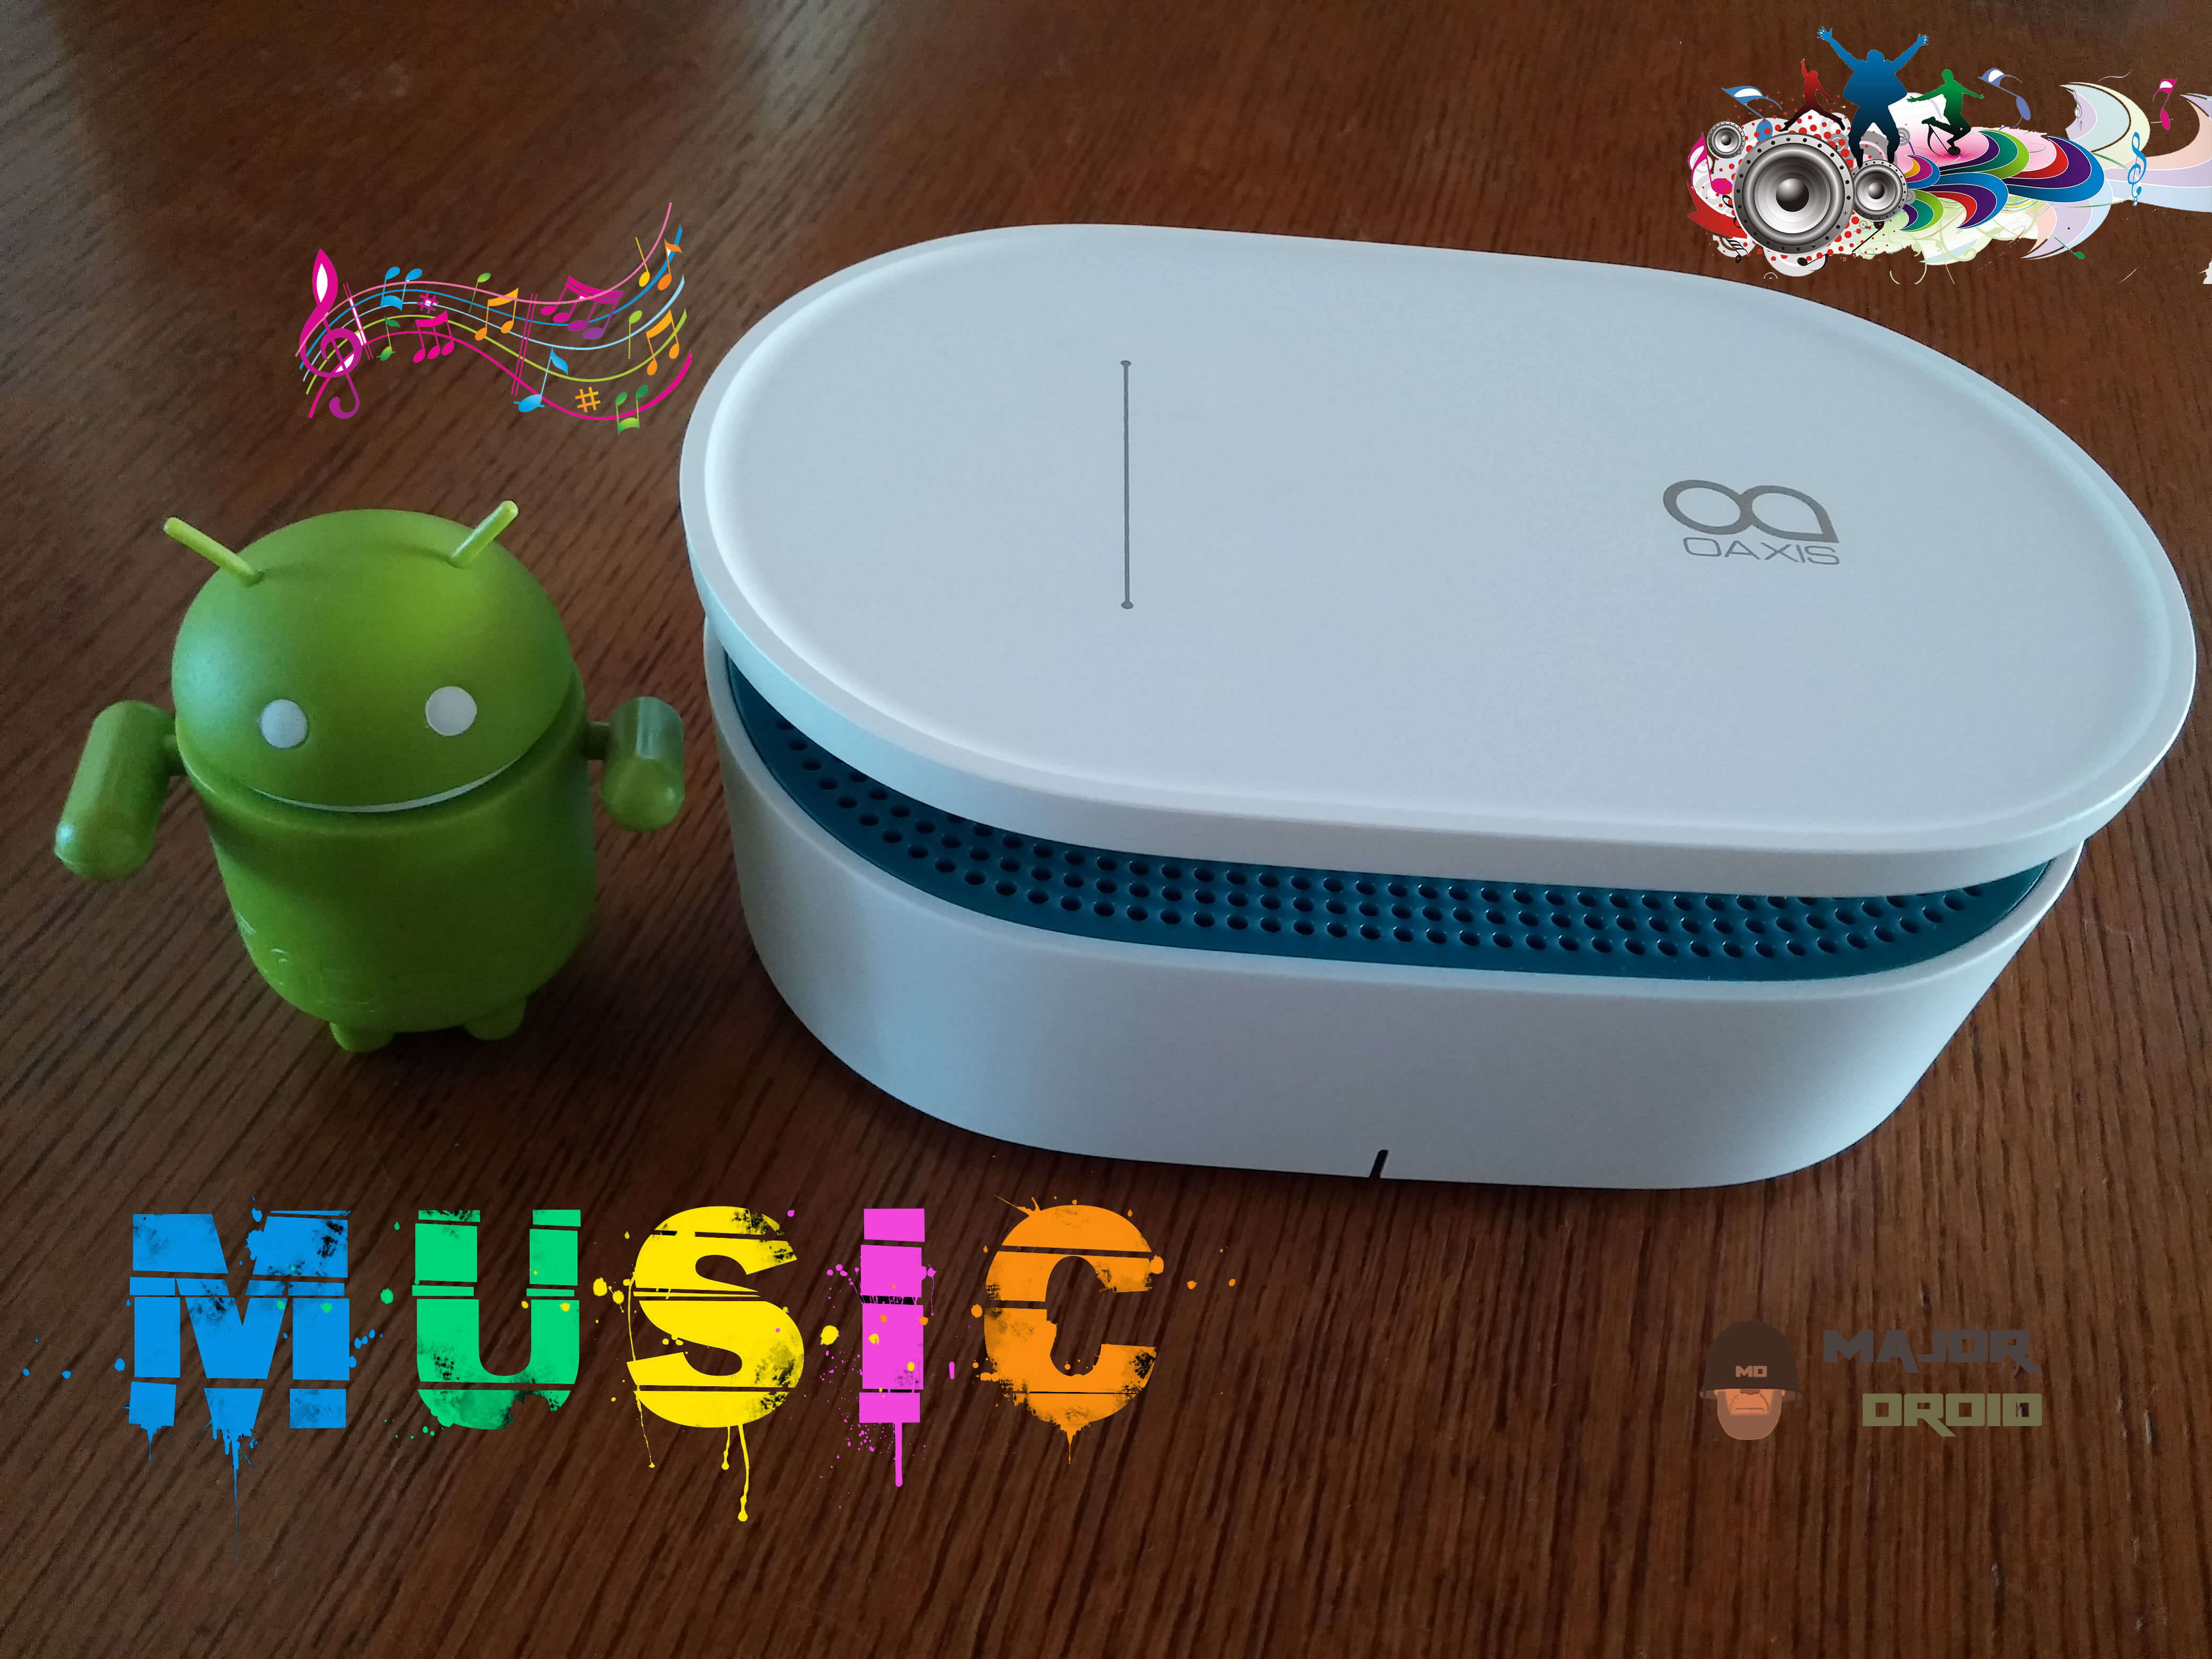 The Oaxis Bento Magnetic Induction Audio Speaker